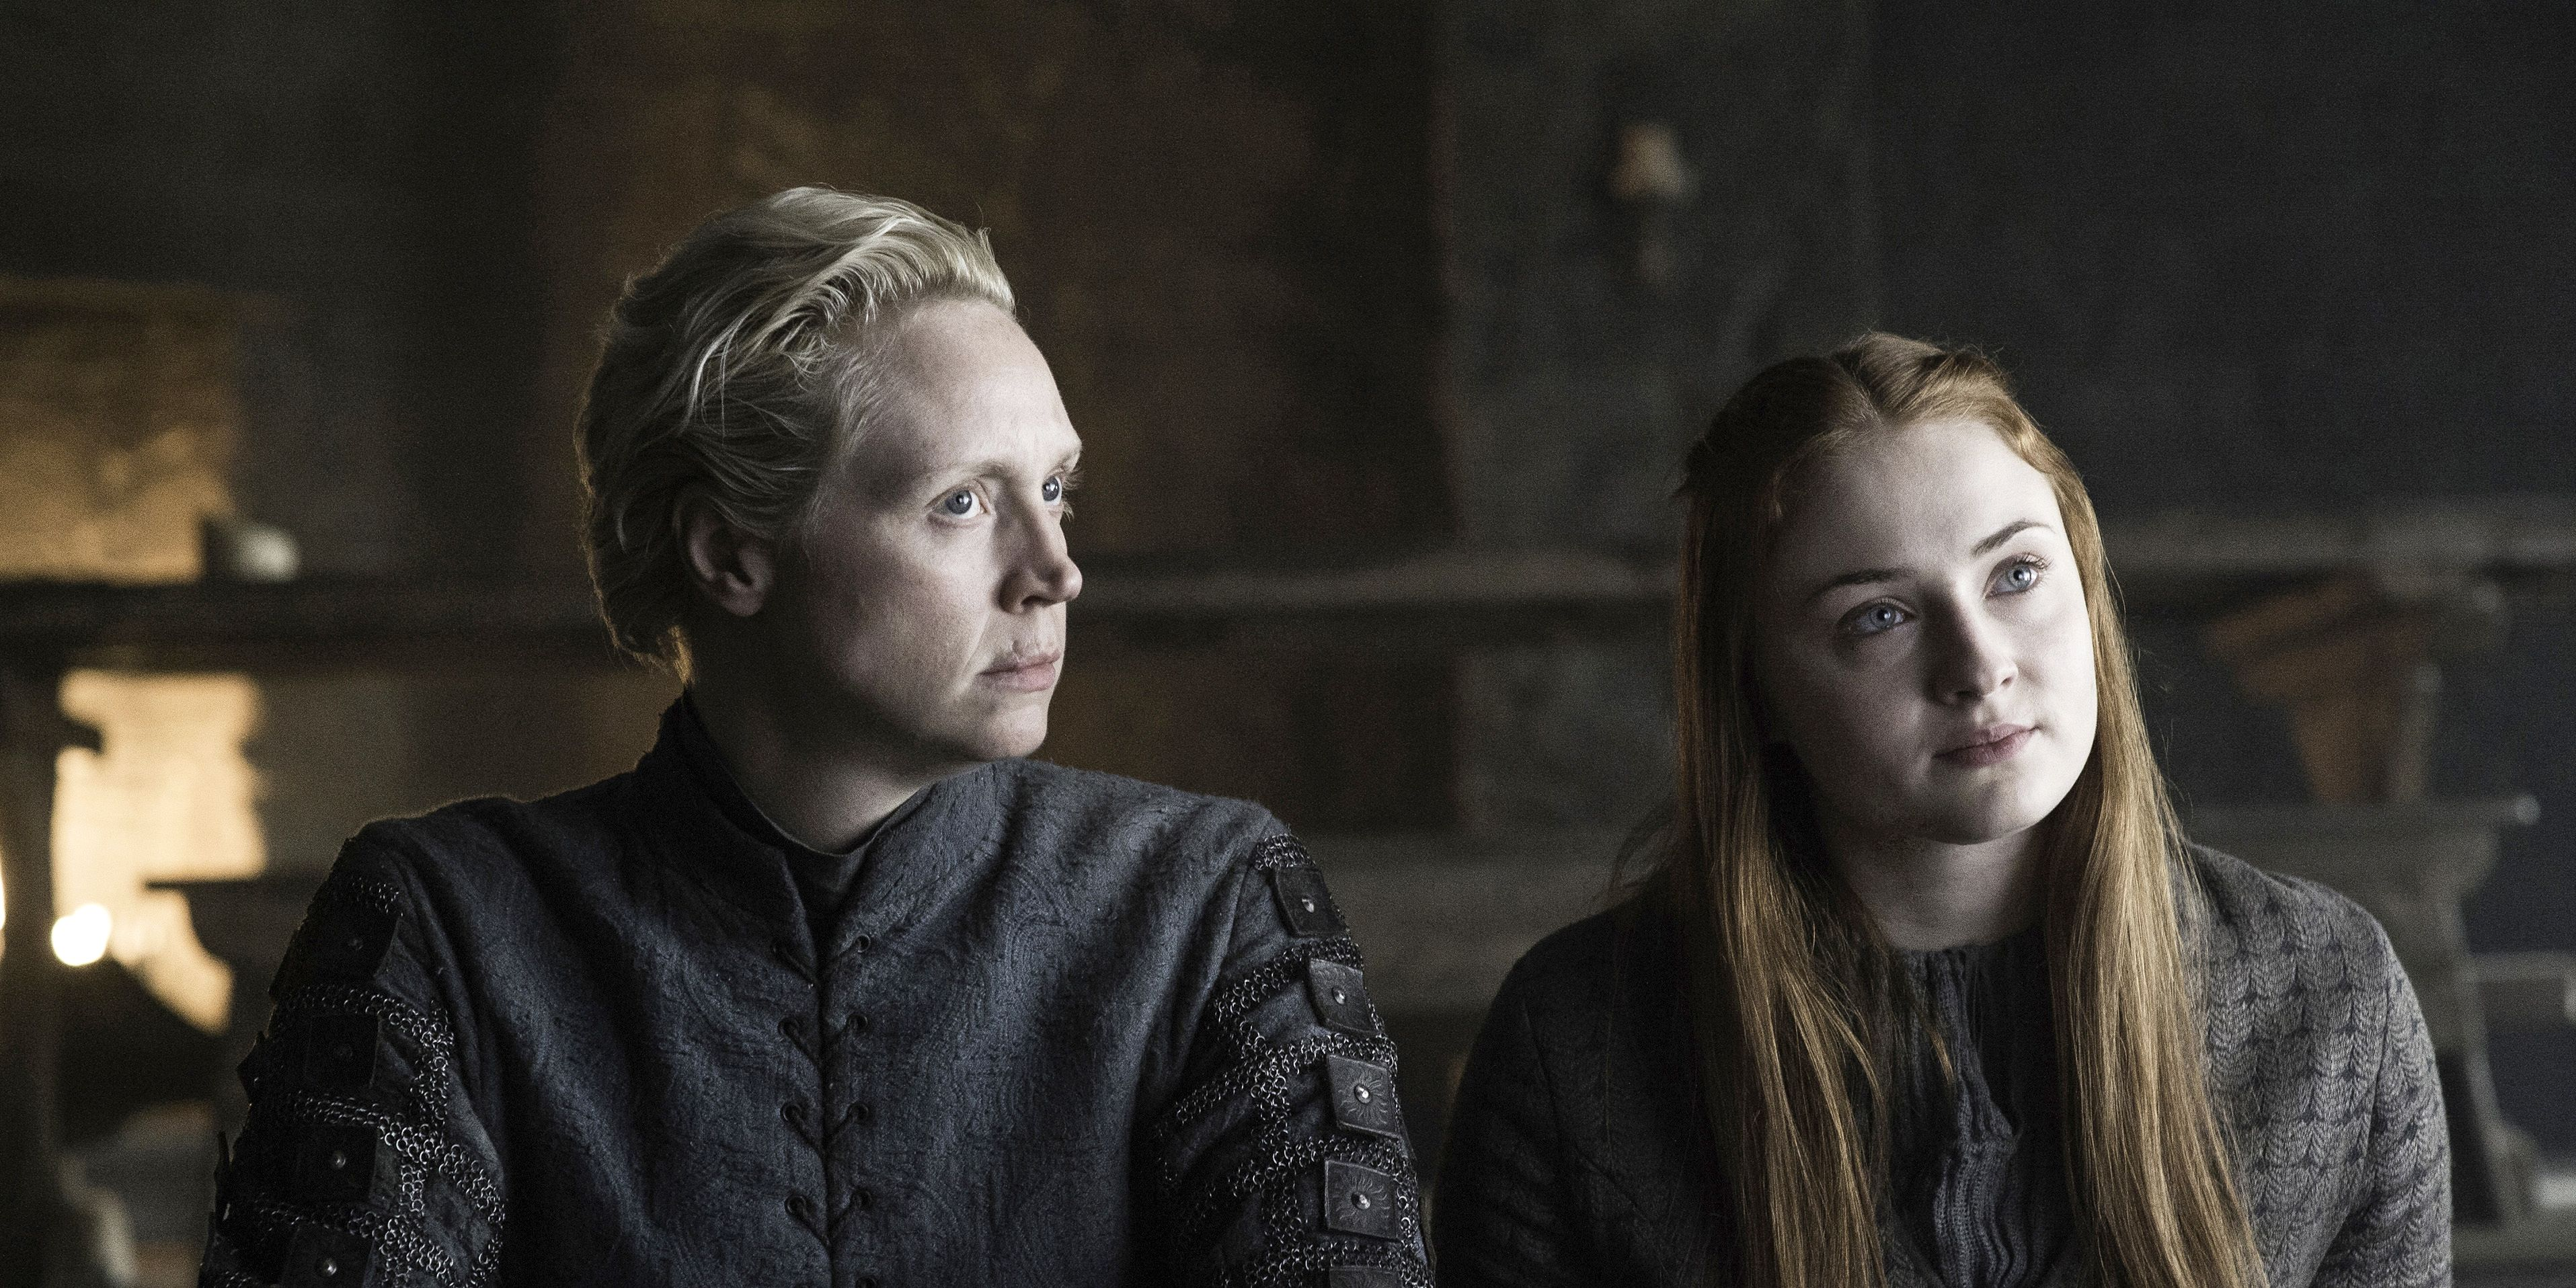 Game of Thrones season 6 episode 5 'The Door': Brienne (Gwendoline Christie) and Sansa (Sophie Turner)